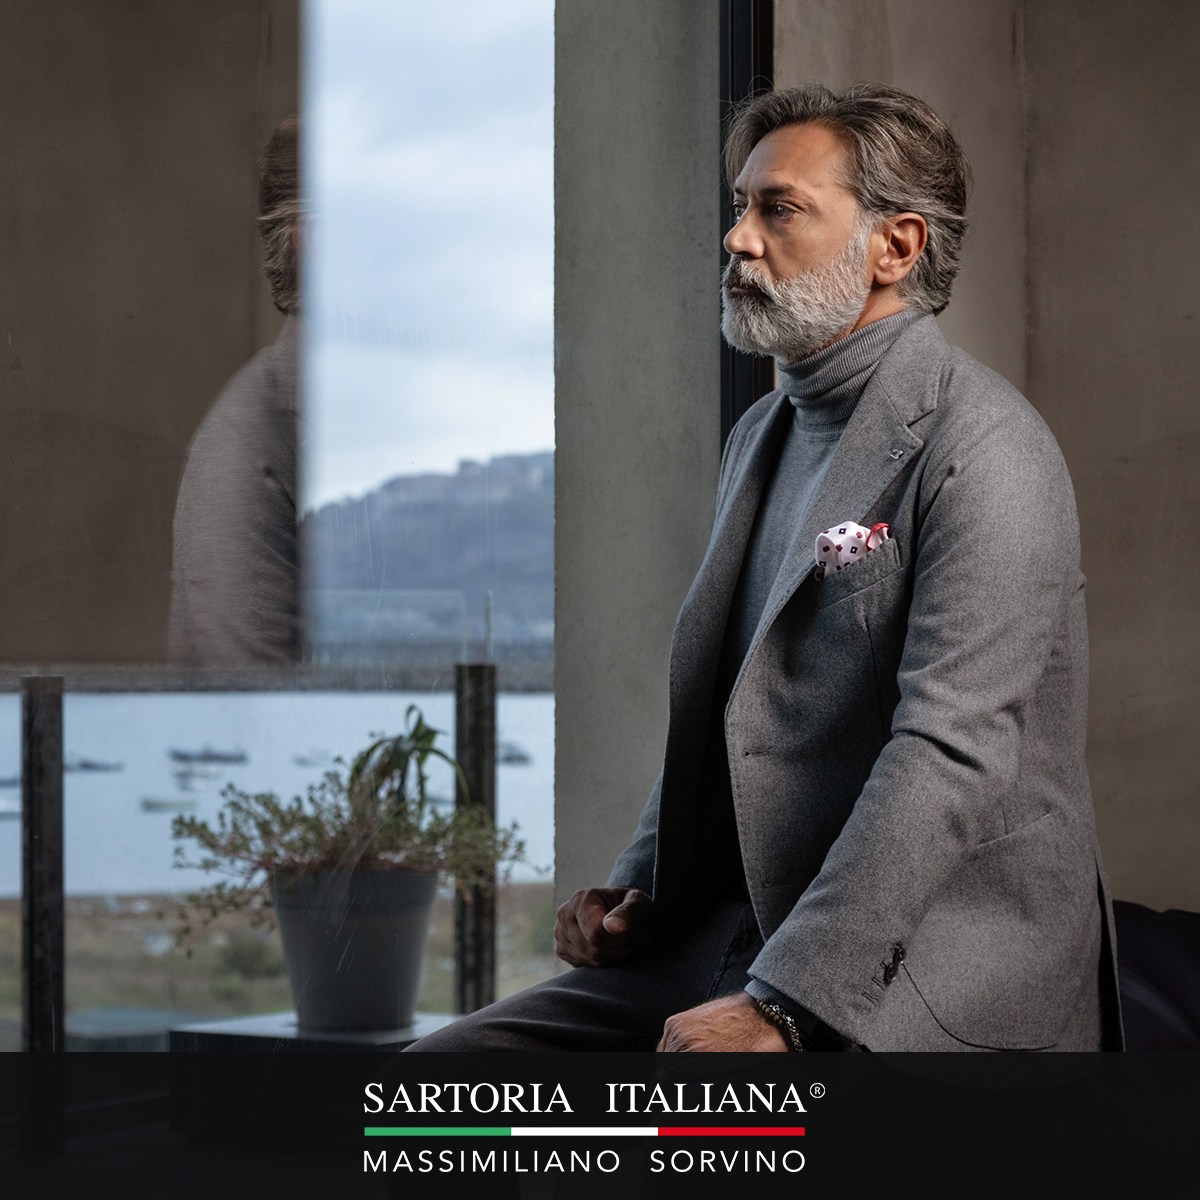 Giacca Sartoriale Made in Italy